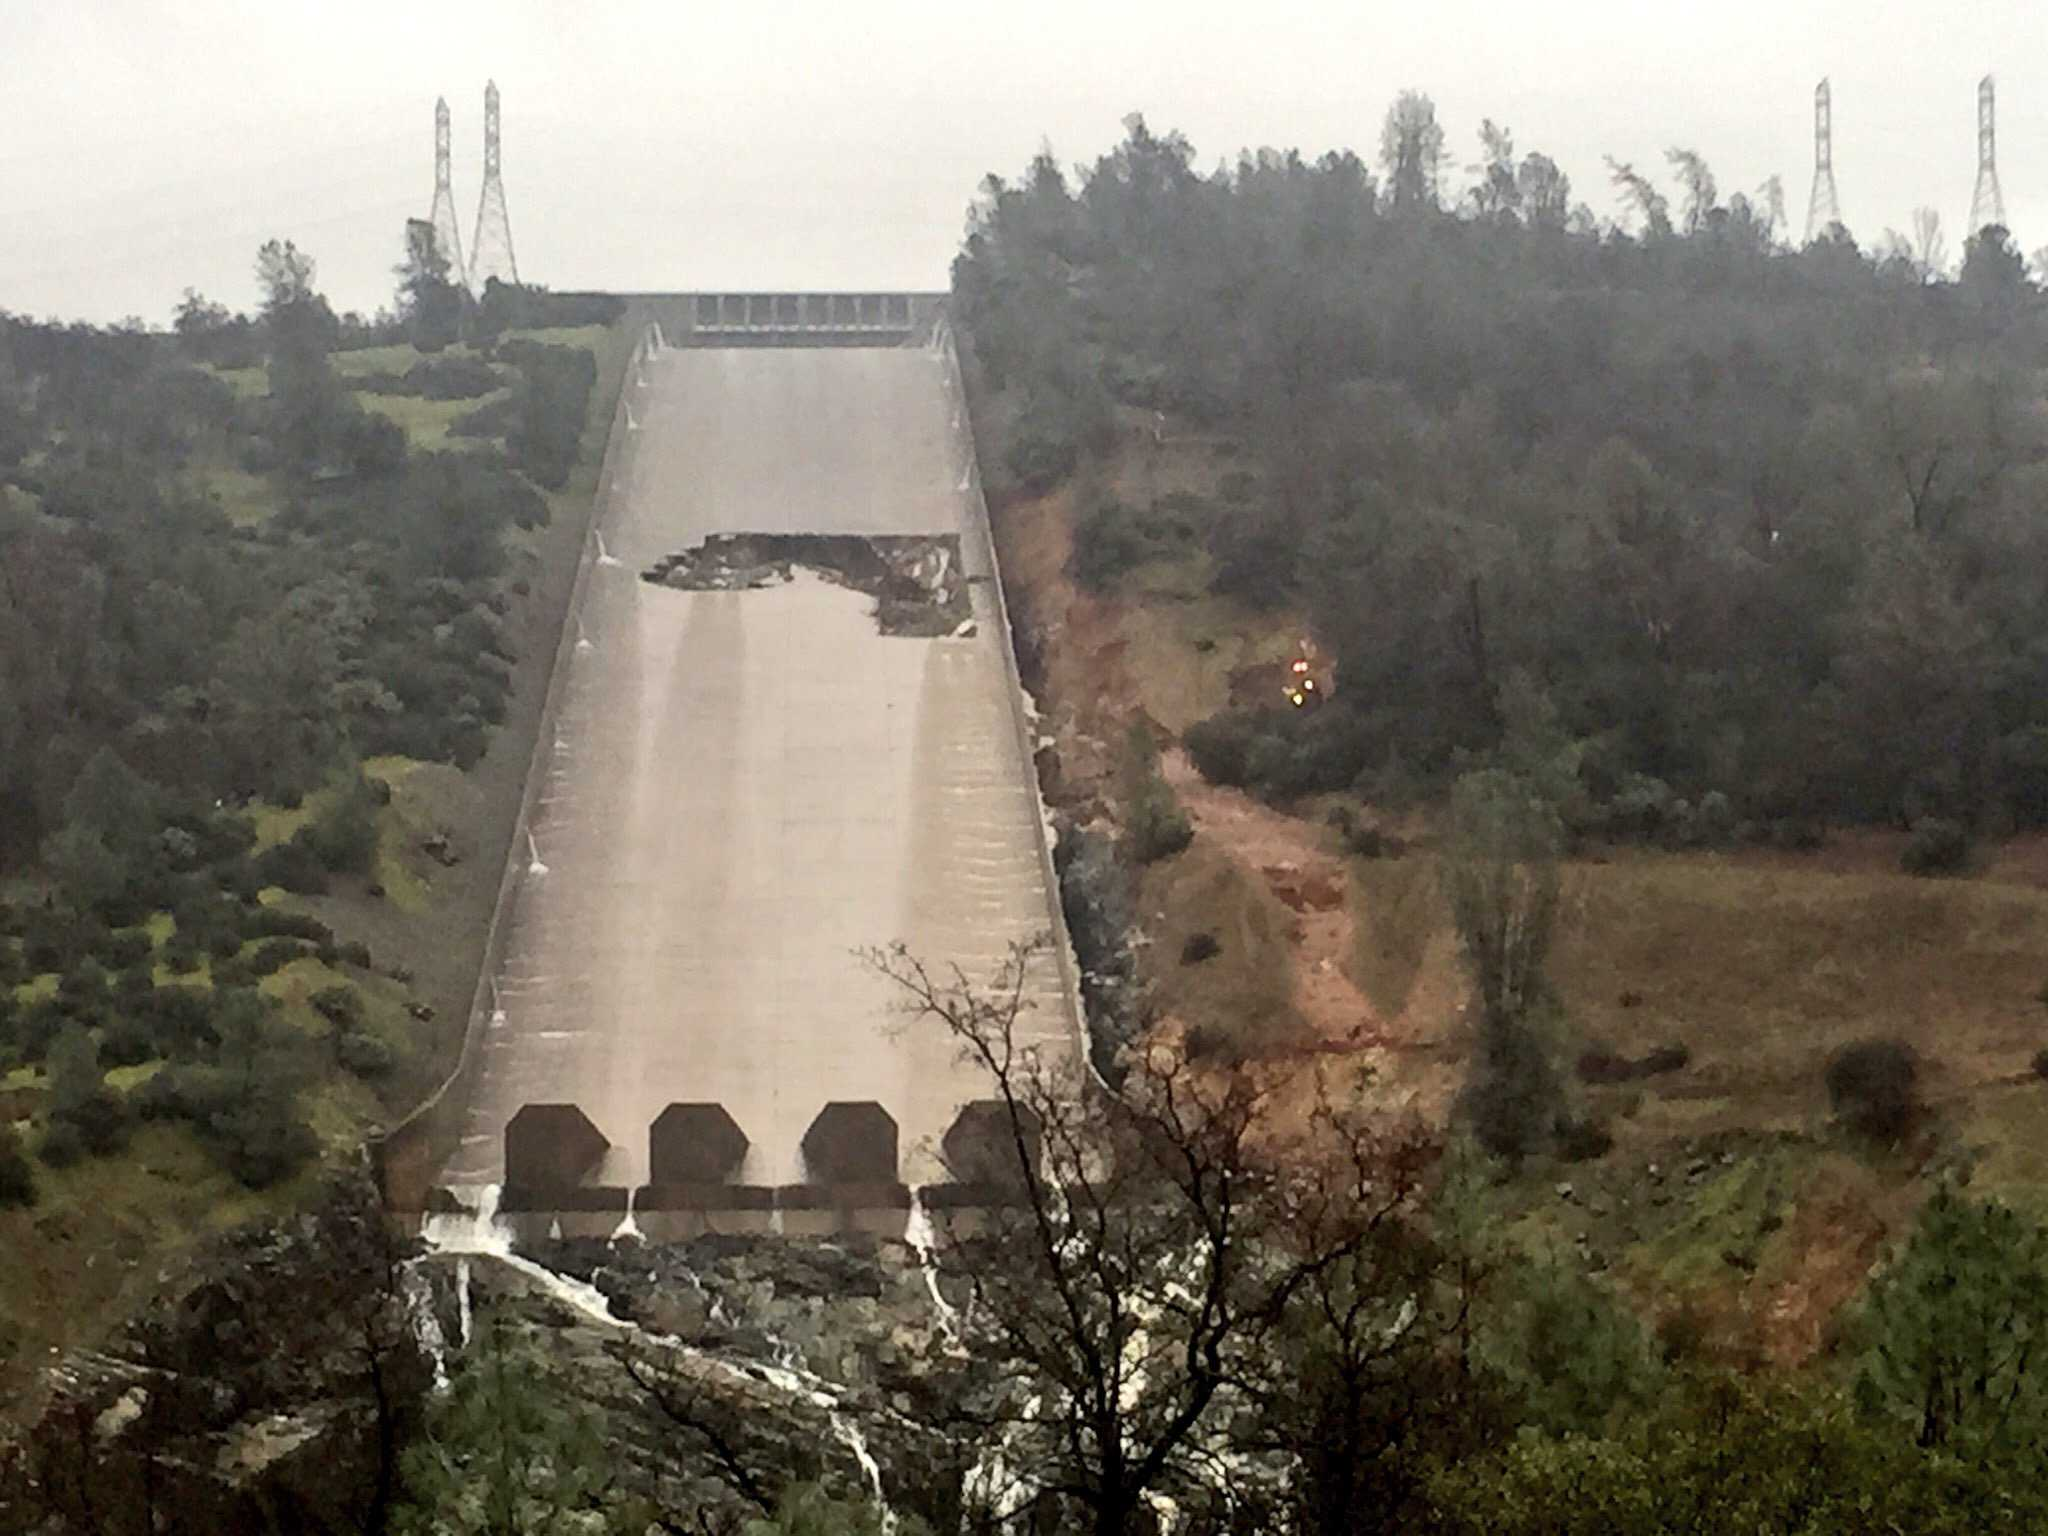 DWR shake-up after critical Oroville Dam spillway report - Stockton